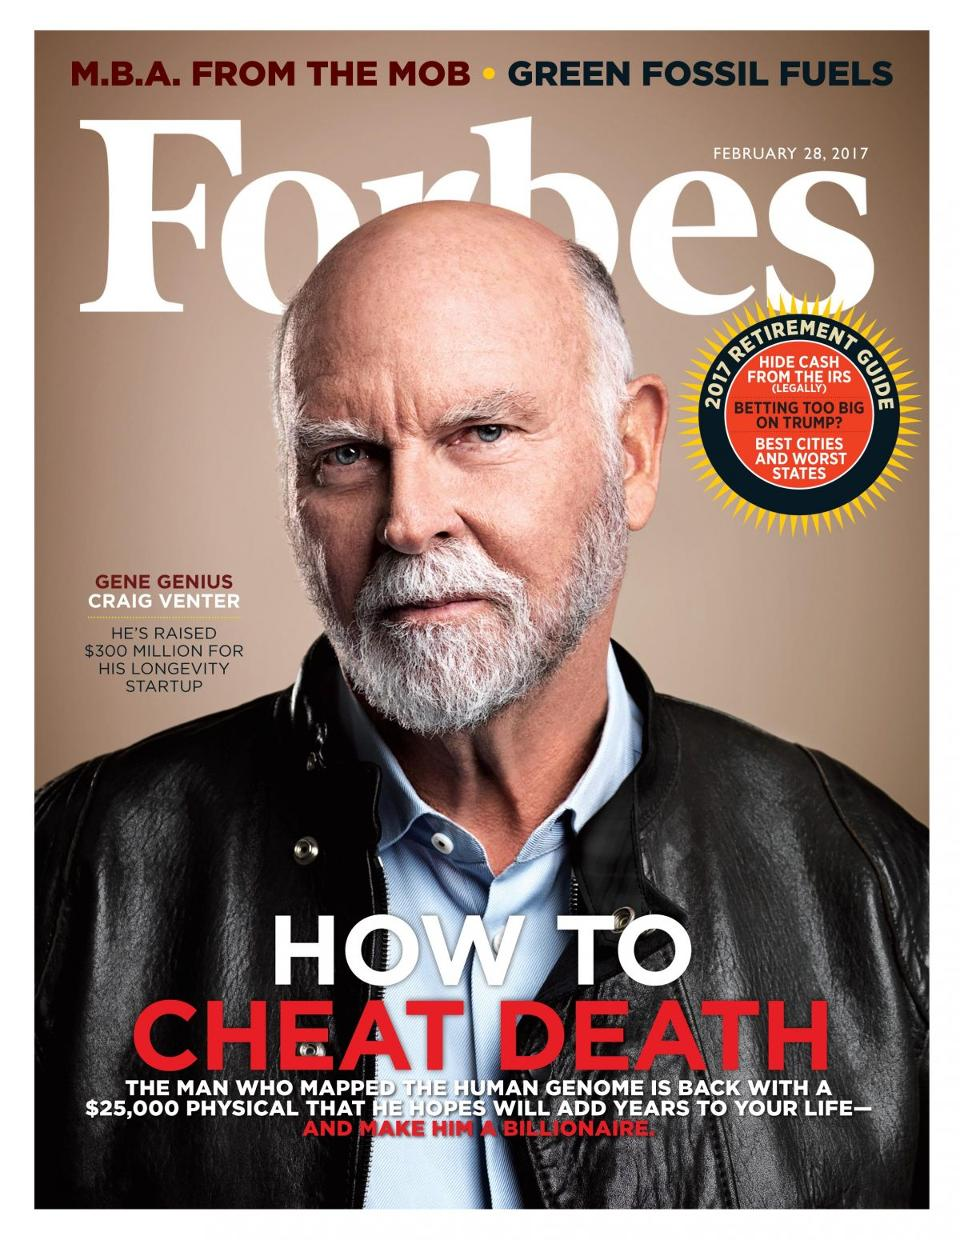 forbes-cover-venter-retire-022817-1200x1550.jpg